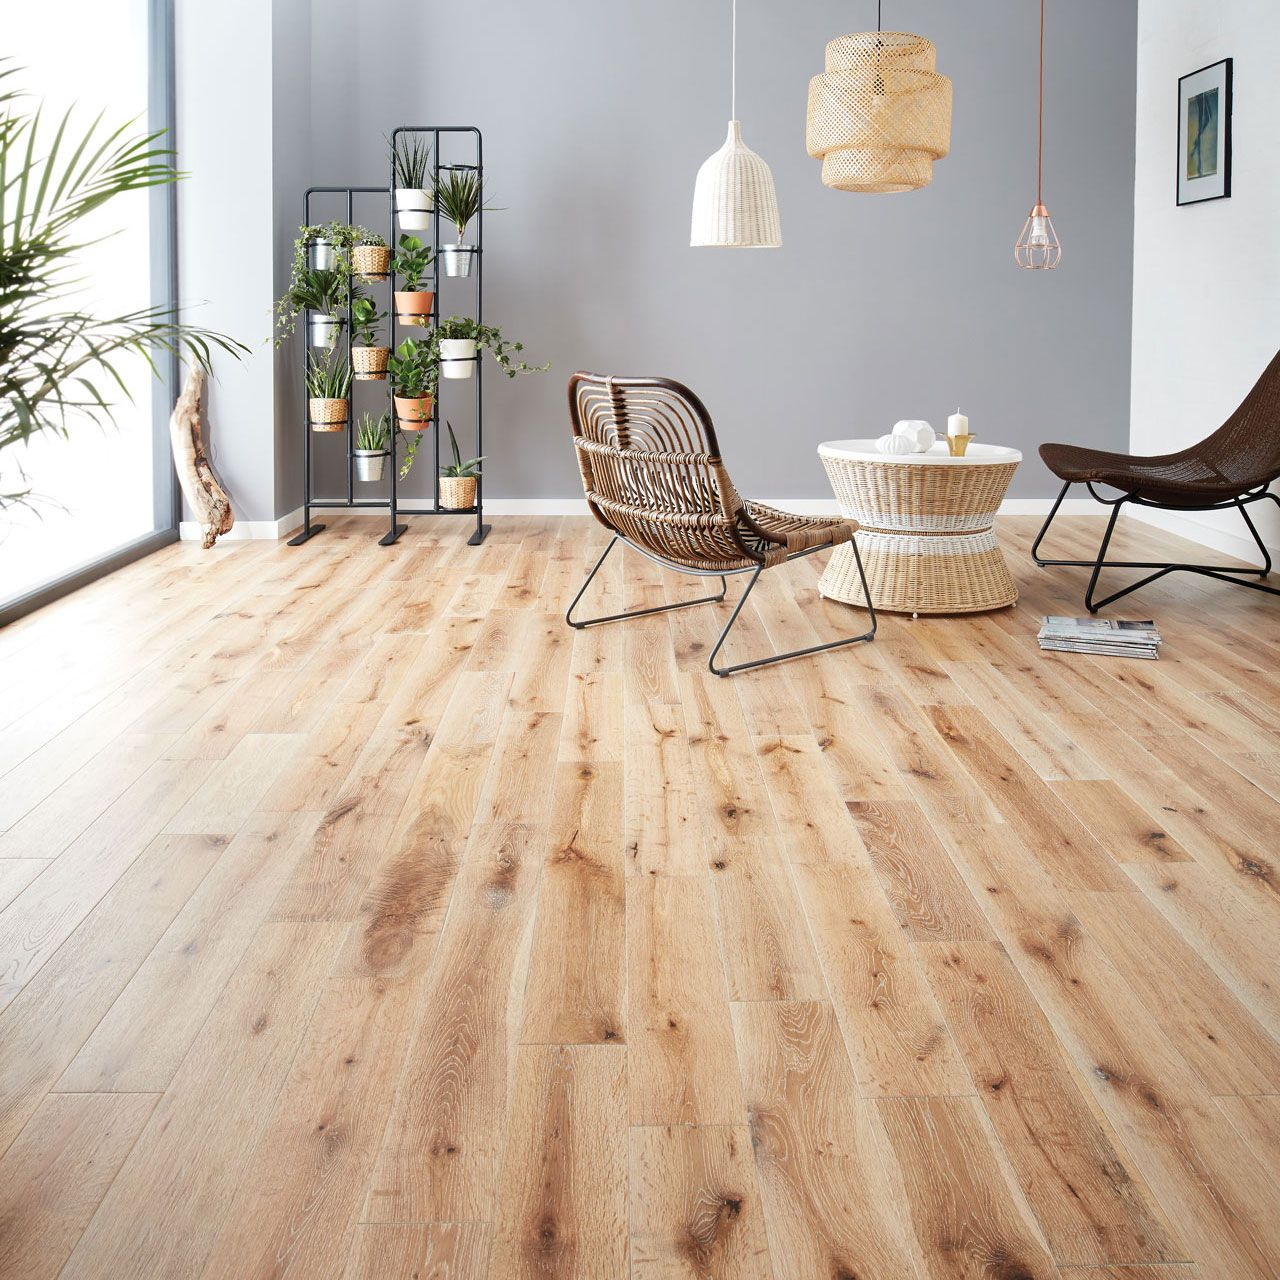 Image result for narrow white oak flooring Solid wood